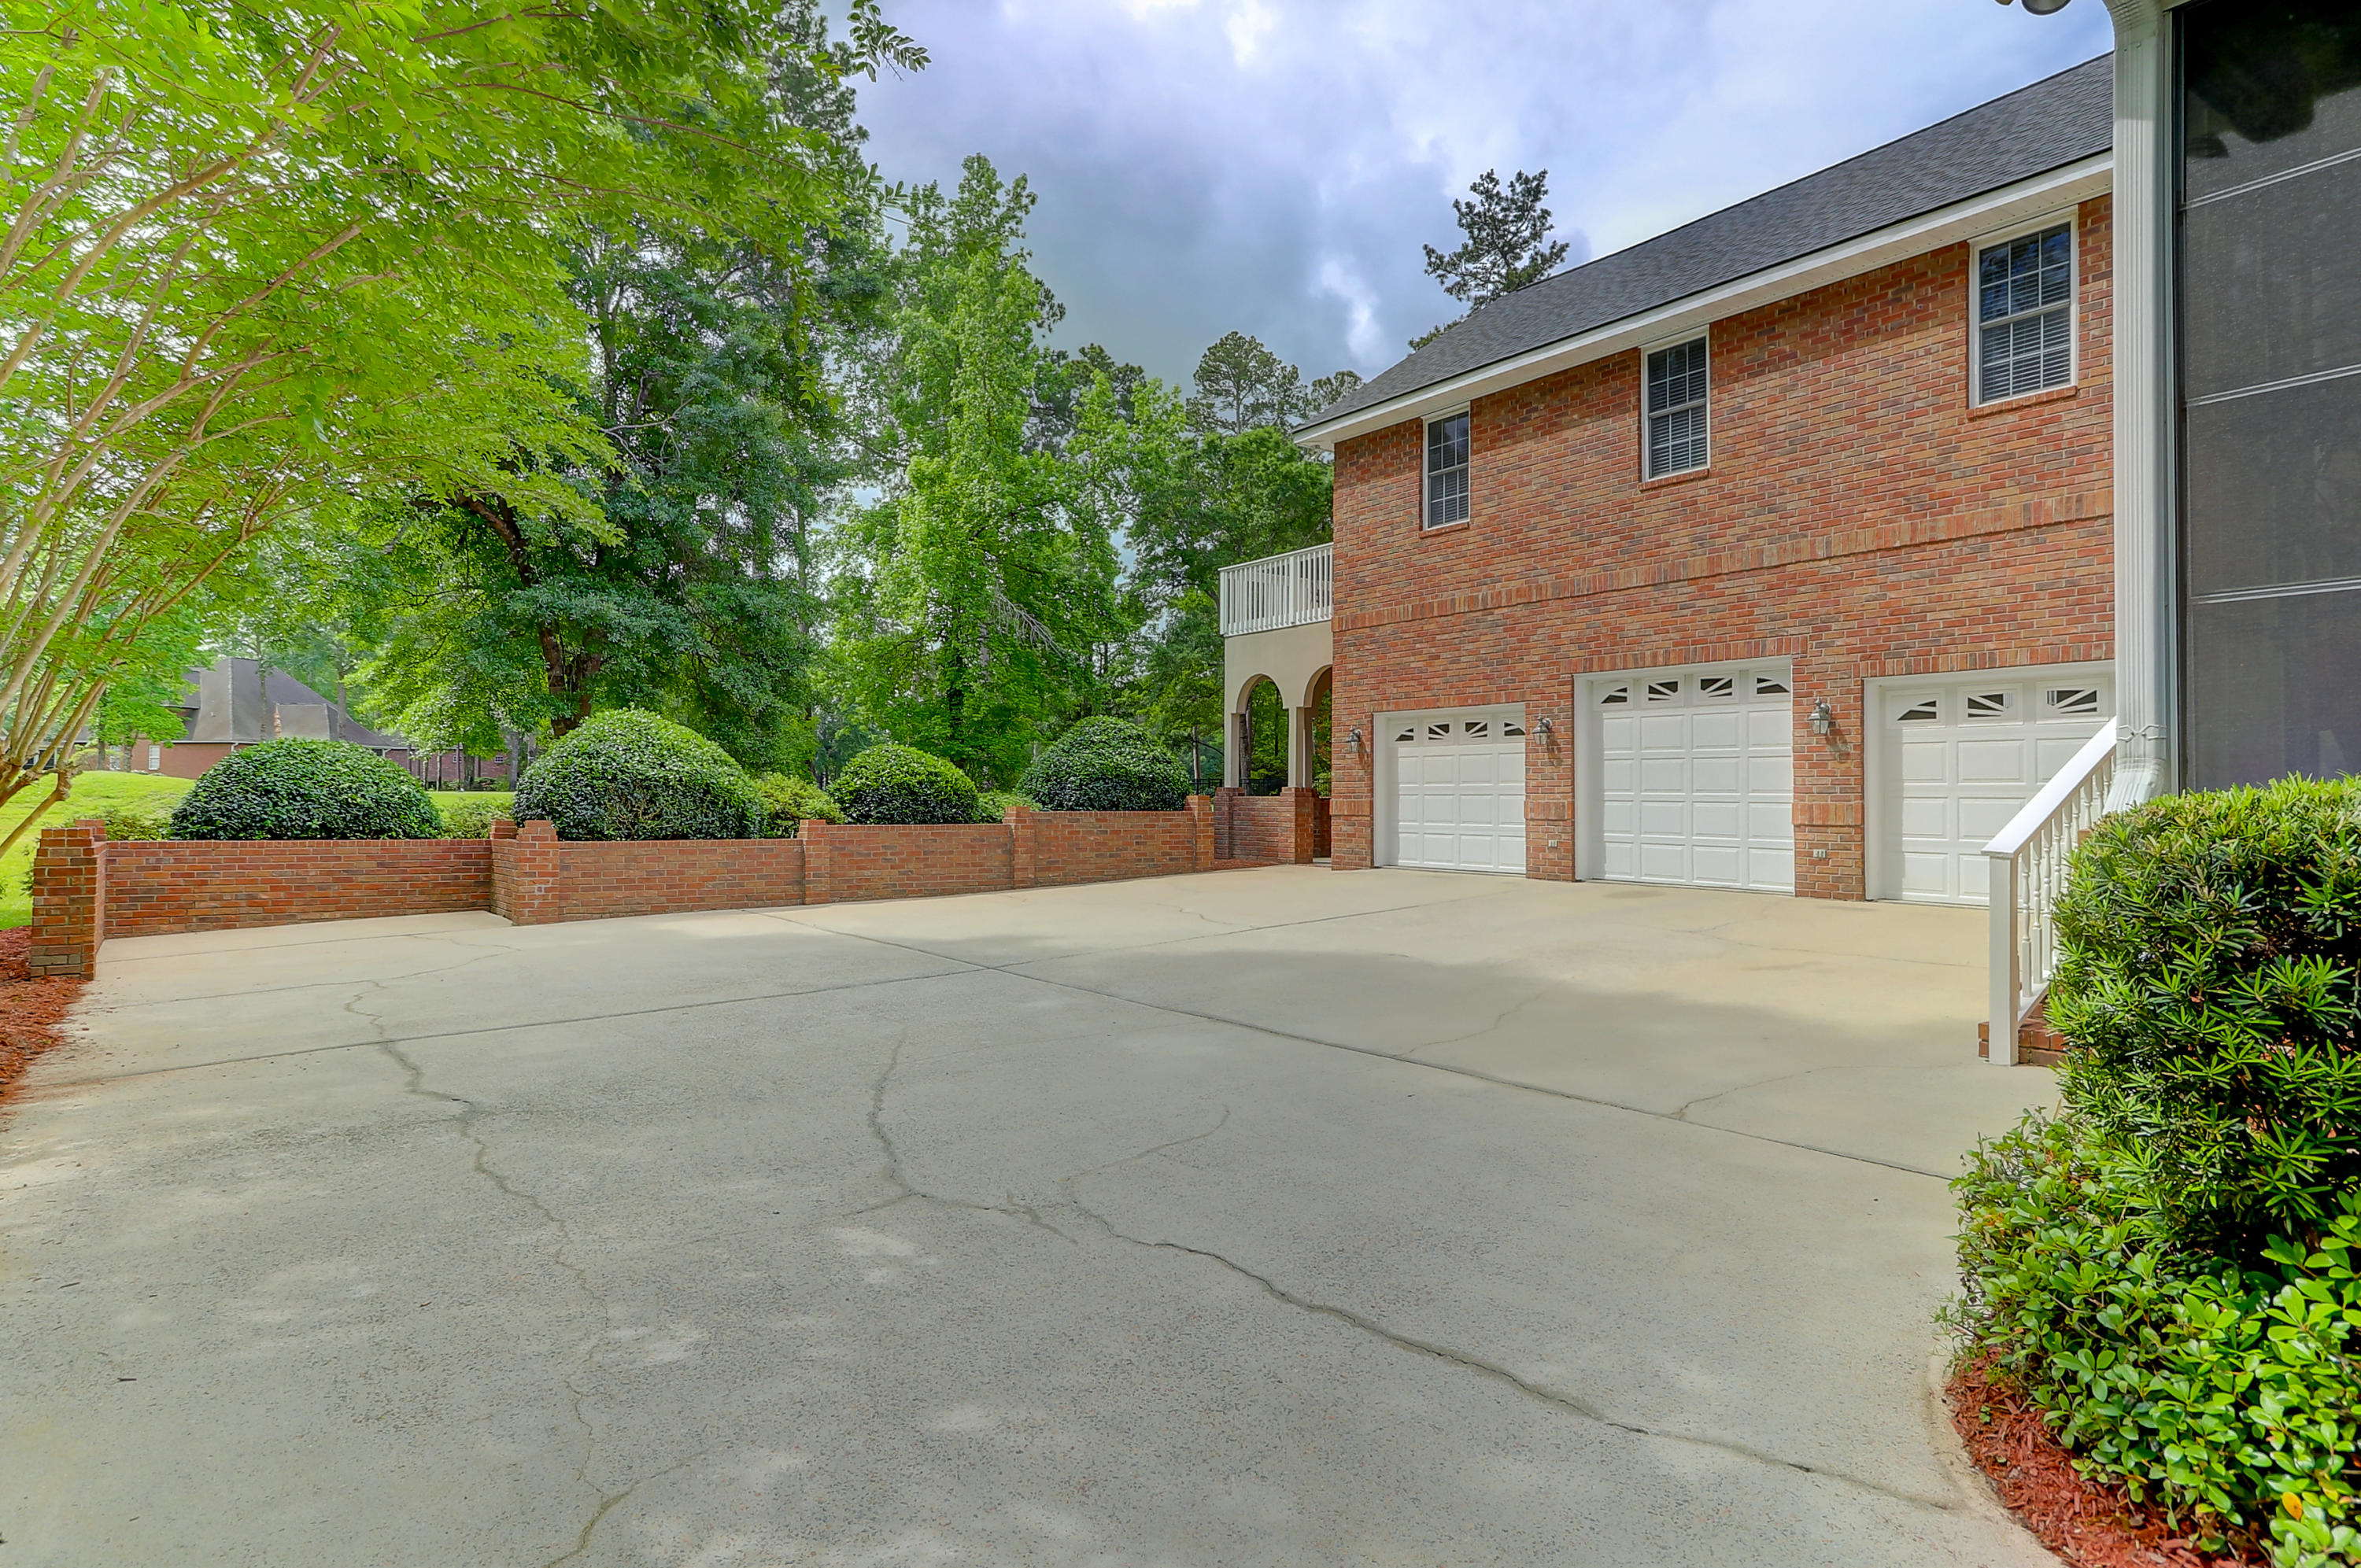 Coosaw Creek Country Club Homes For Sale - 8700 Fairway Woods, North Charleston, SC - 0